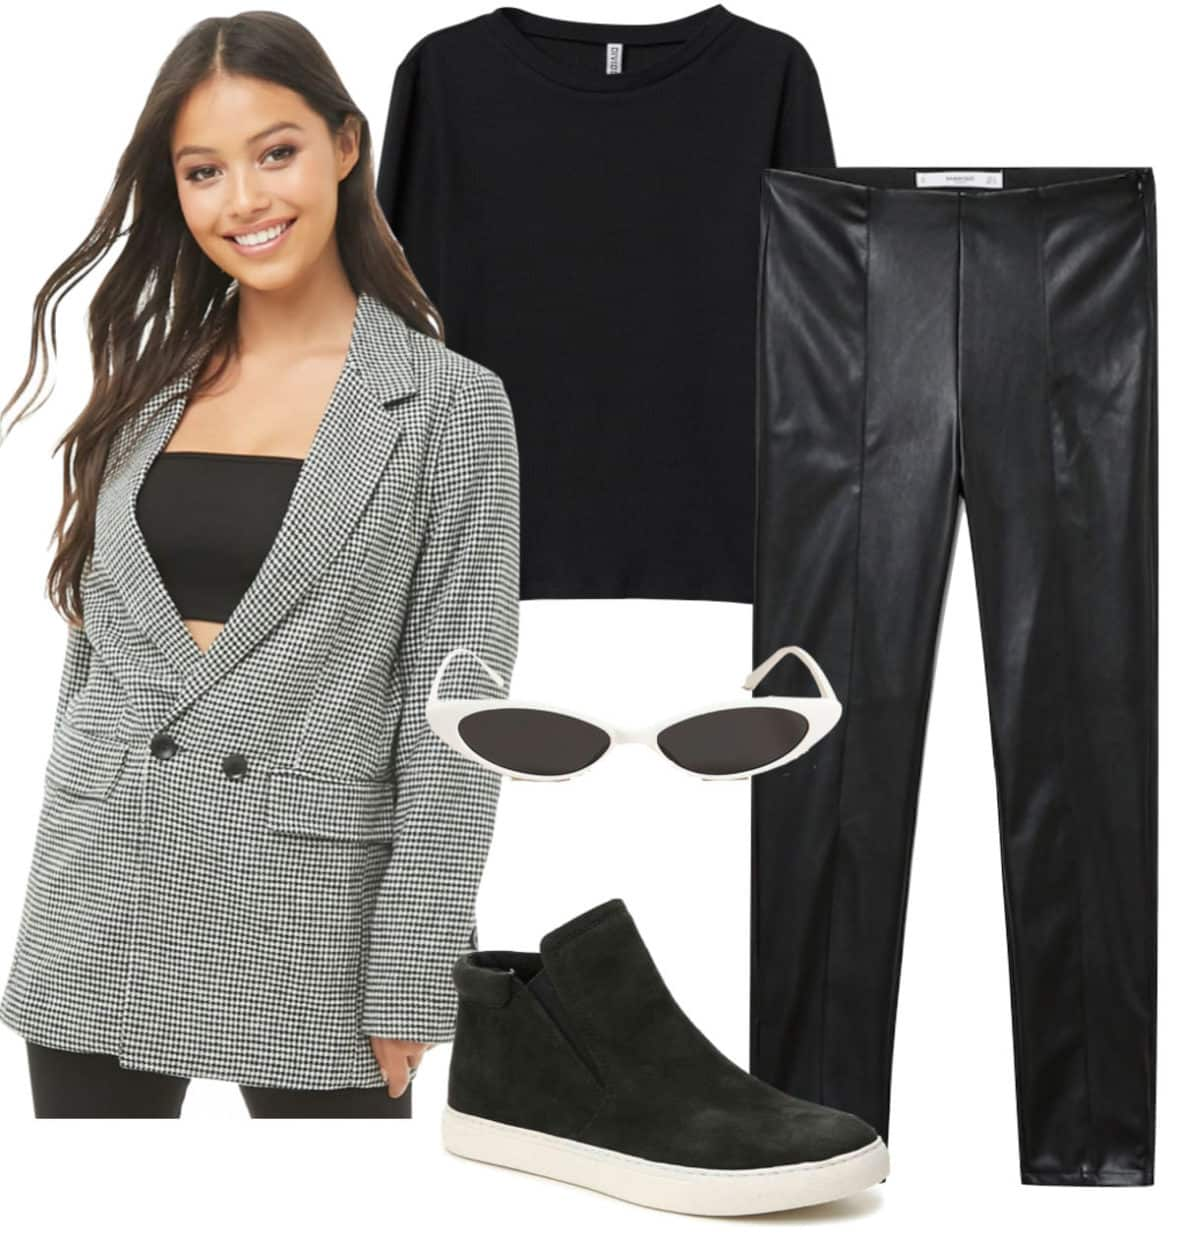 Kaia Gerber Outfit: faux leather pants, black crew neck top, houndstooth print blazer, oval white sunglasses, and black high top sneakers